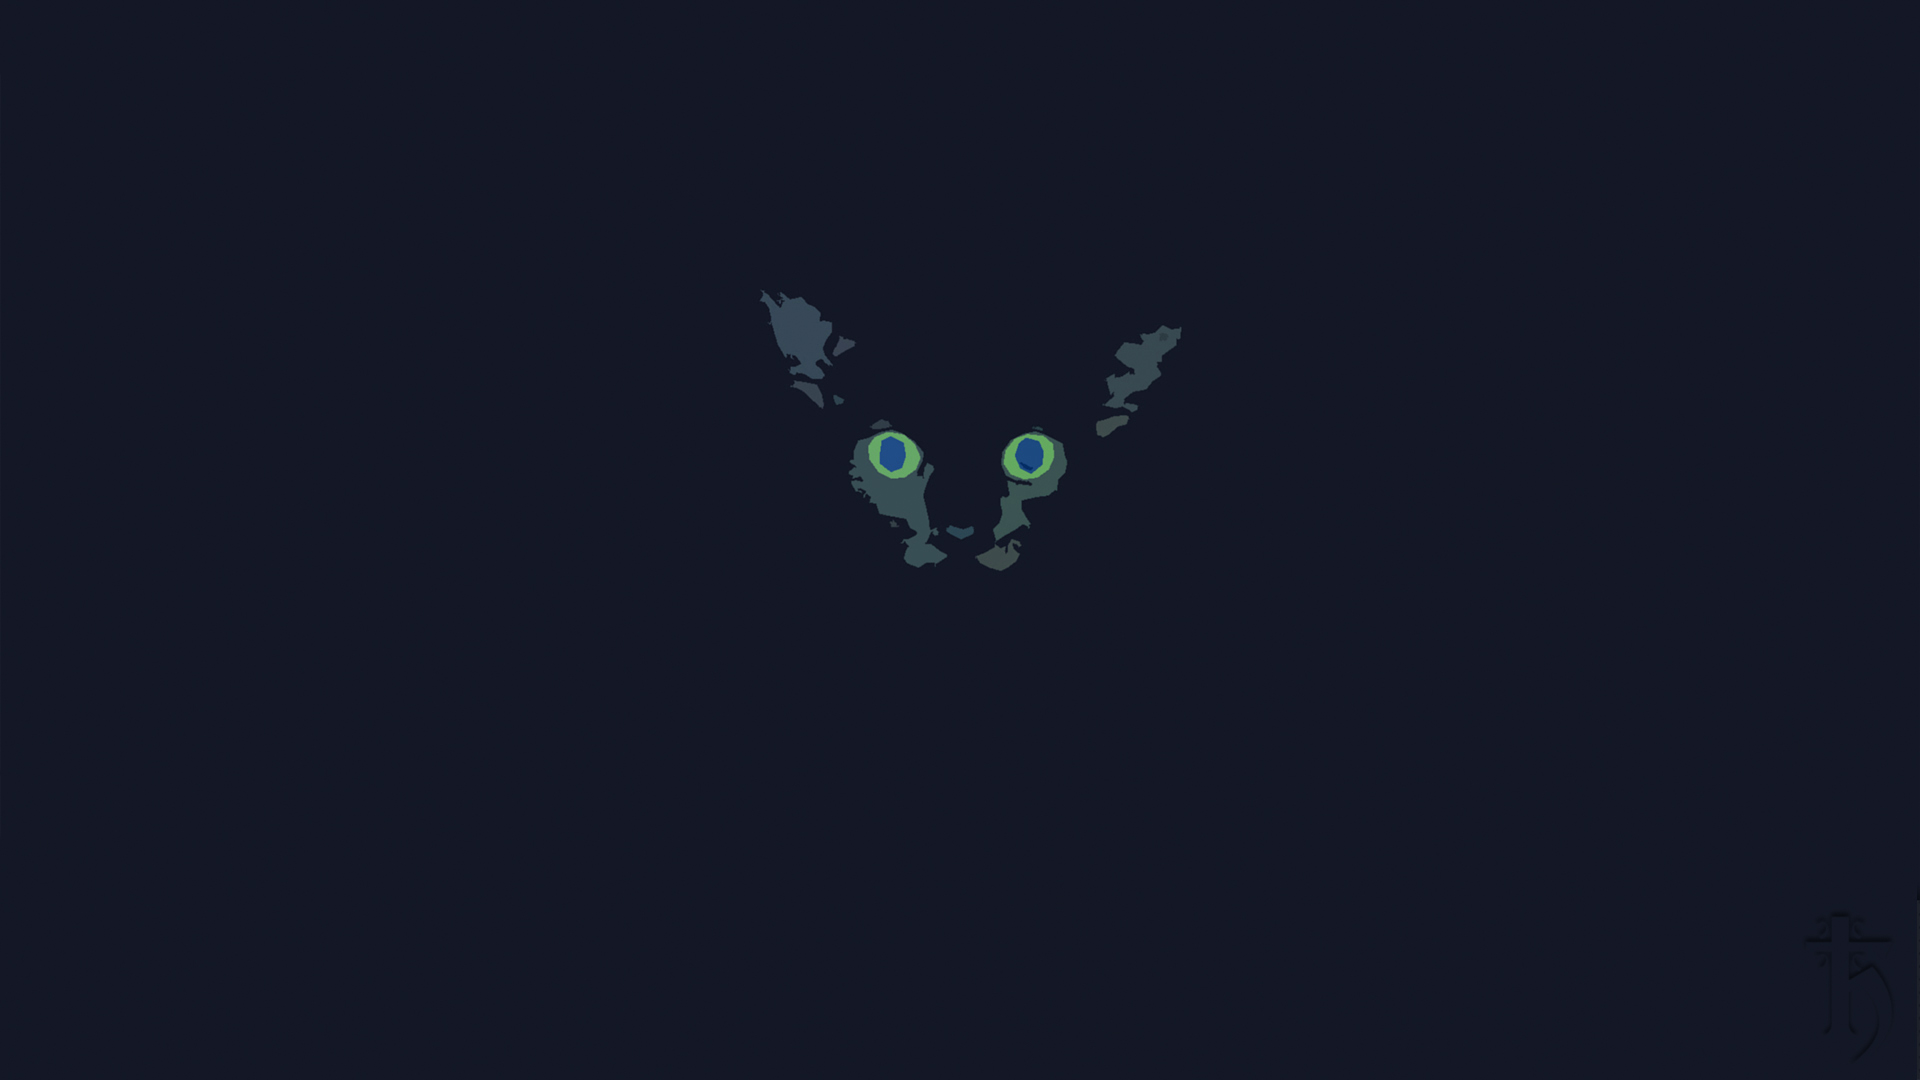 Cat In The Dark Illustration Desktop Wallpaper 1920x1080